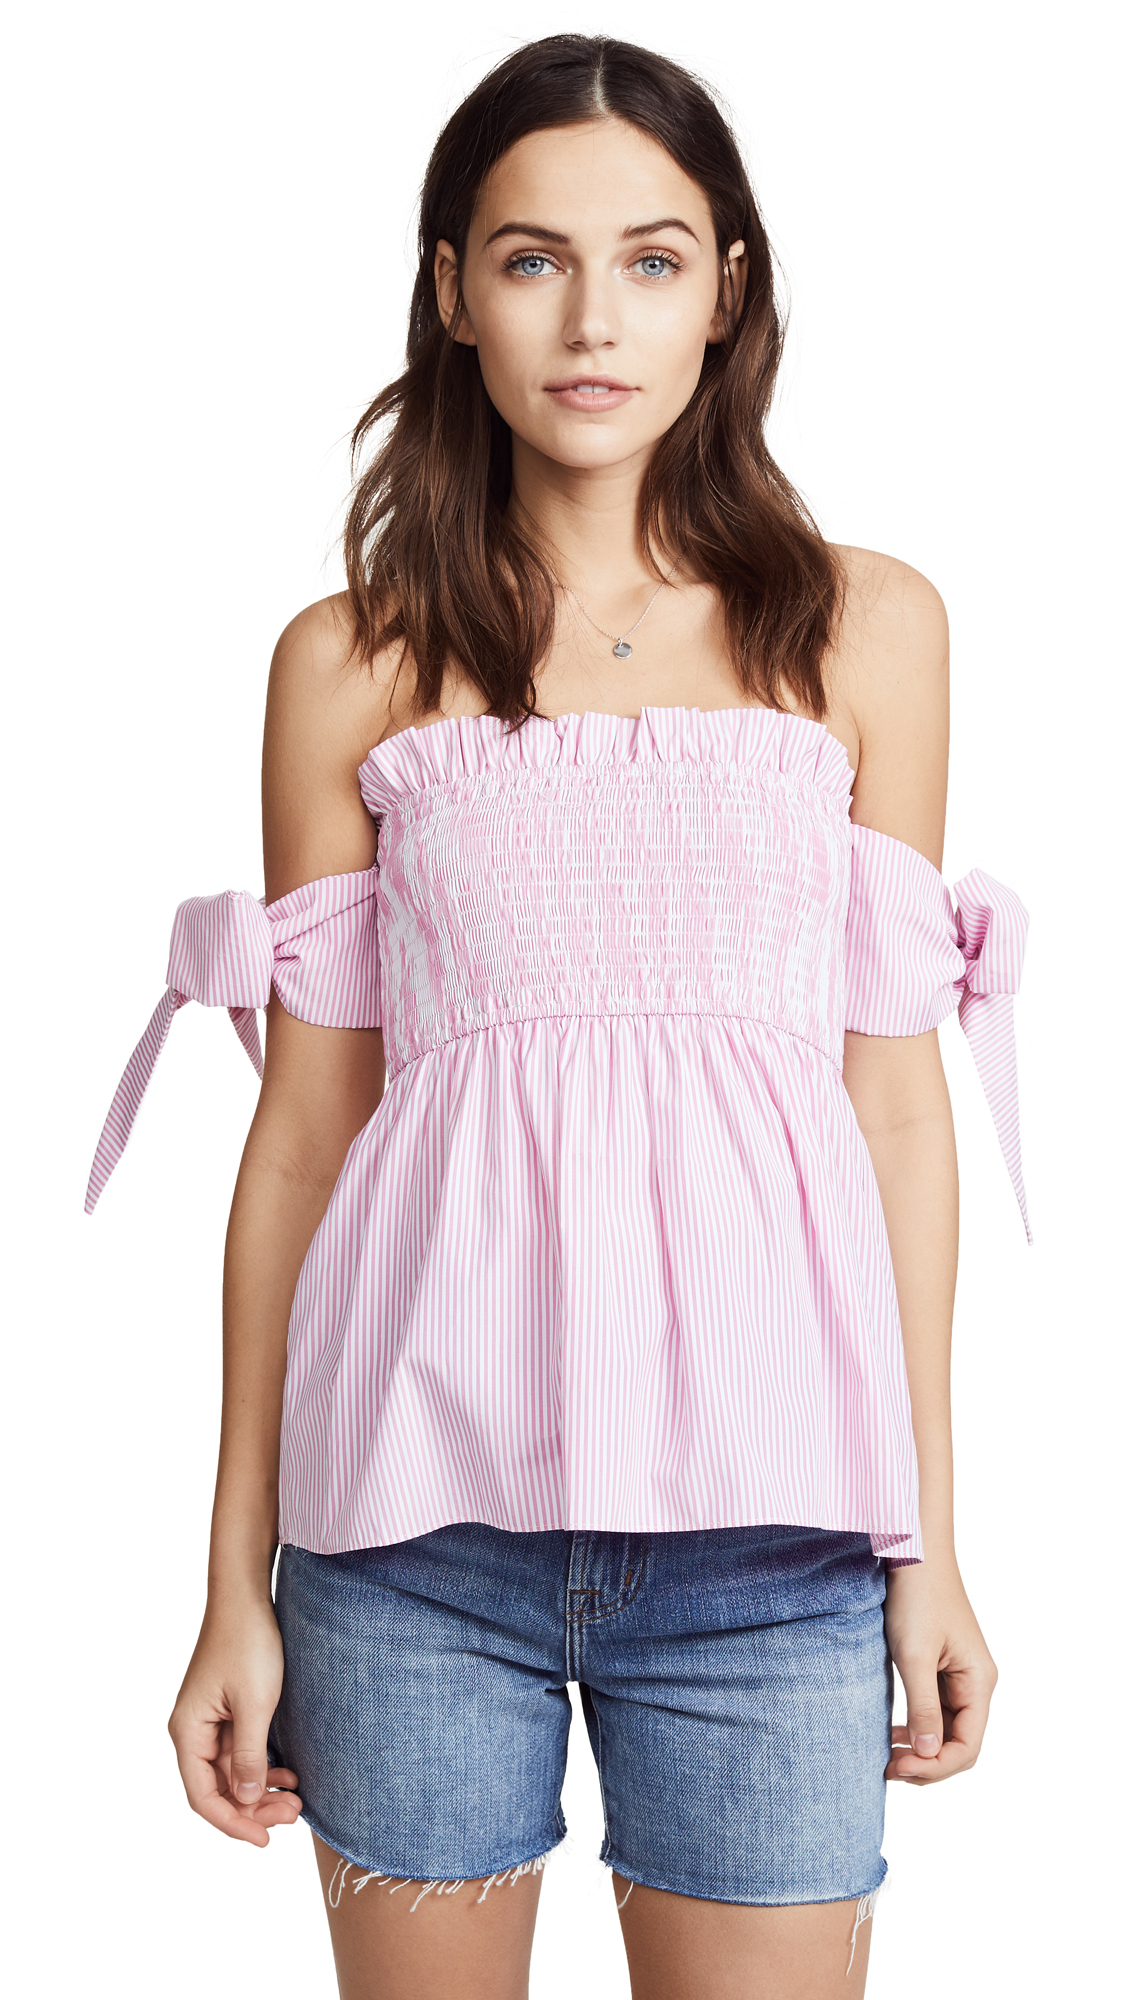 ENGLISH FACTORY Off Shoulder Top with Smocking - Carnation Pink